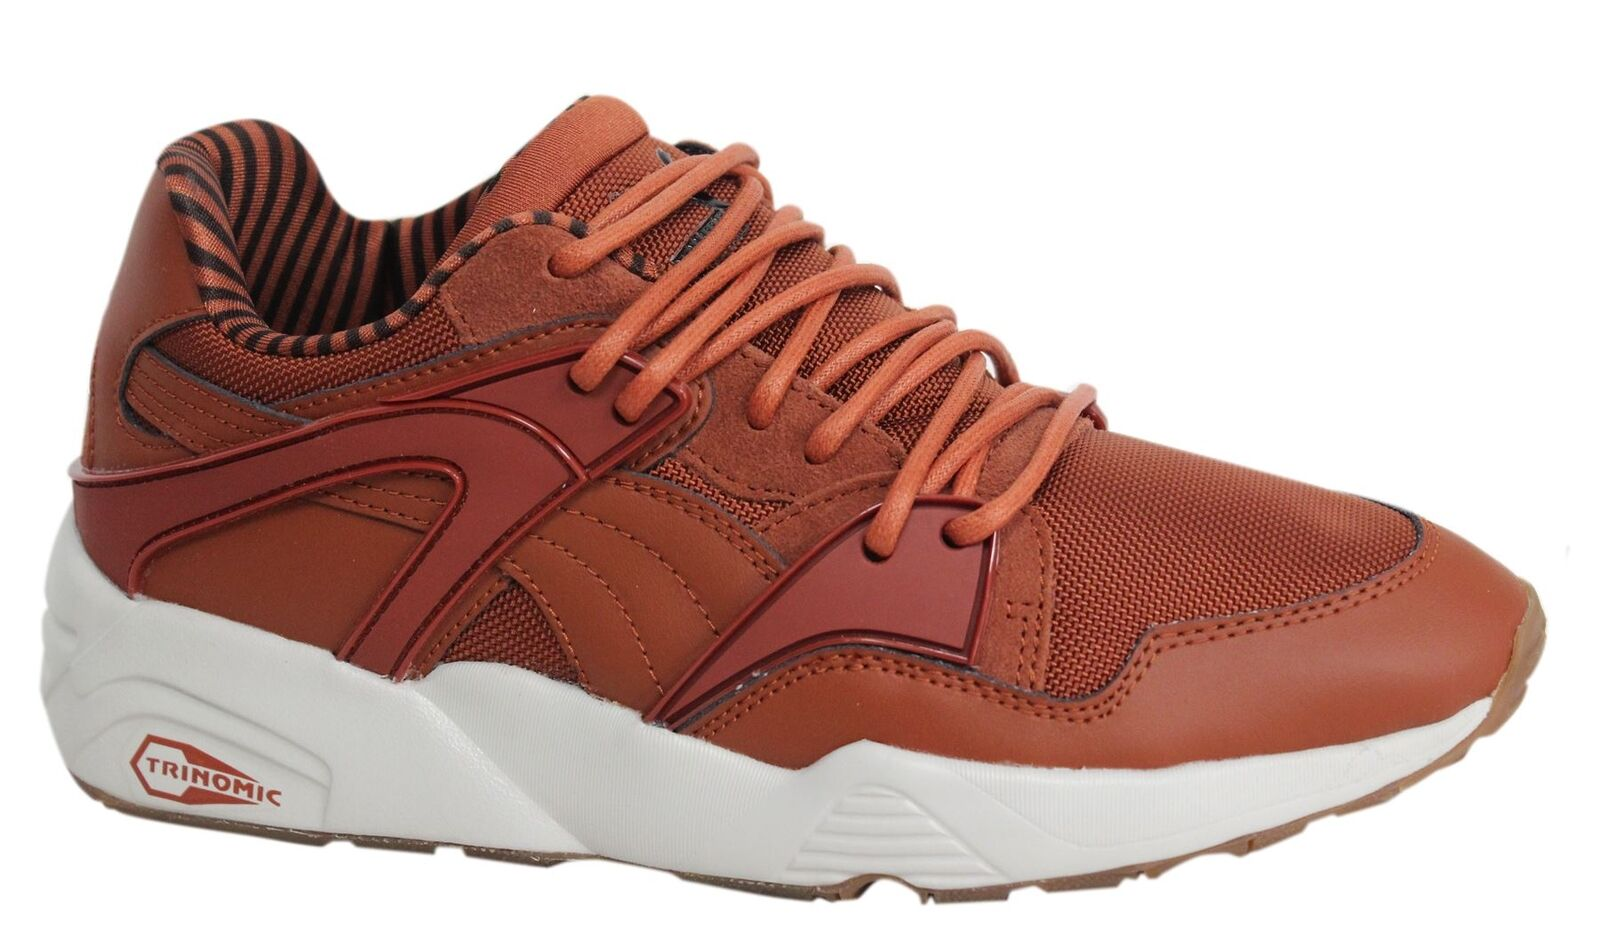 Puma Trinomic Blaze Citi Series Mens Lace Up Trainers 359993 03 M12